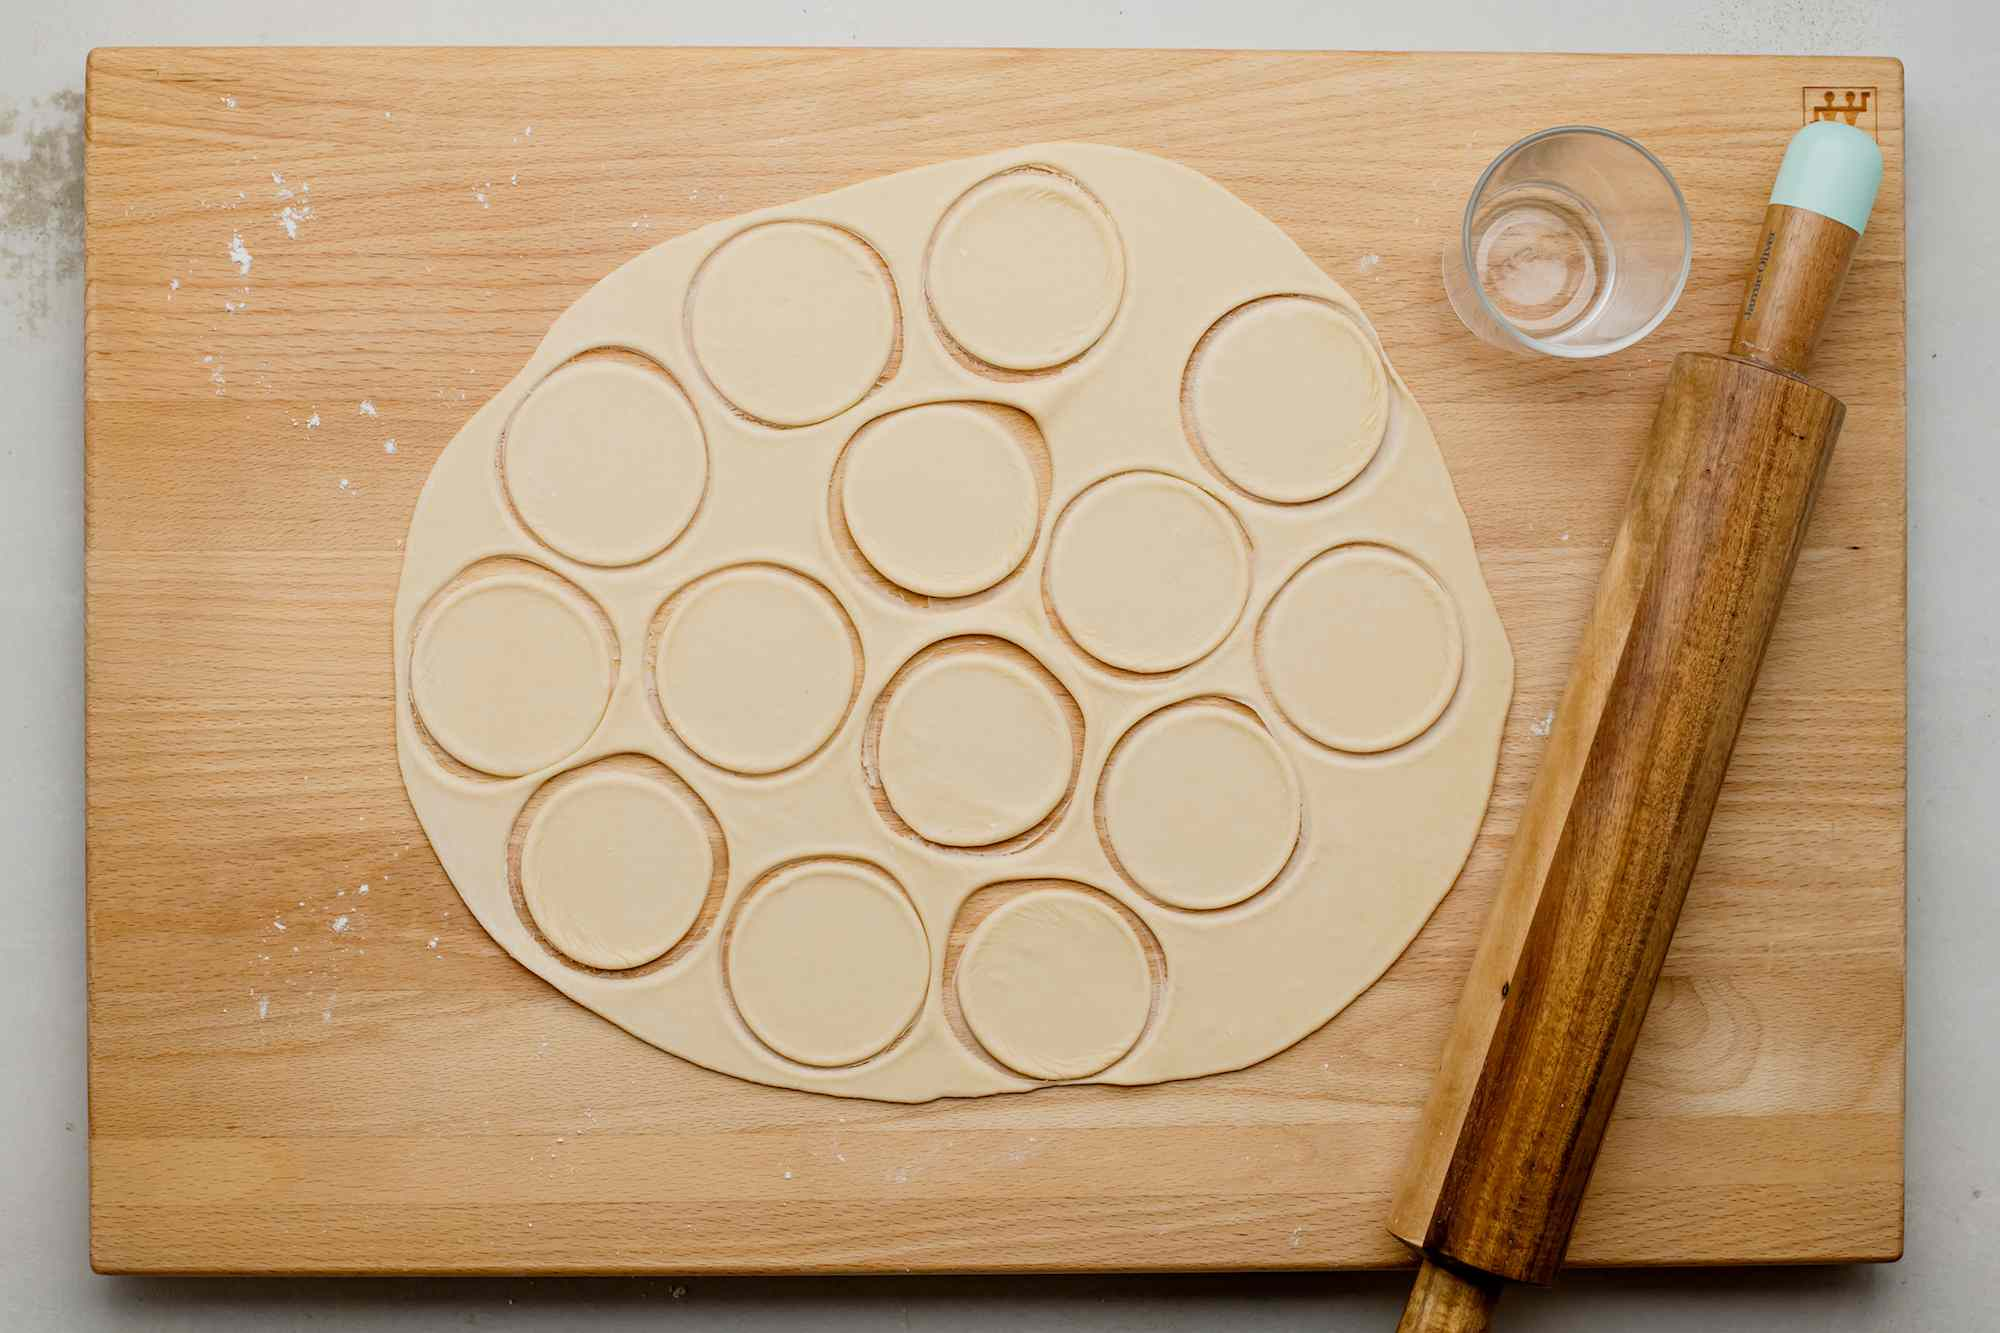 Cut out circles from the rolled dough